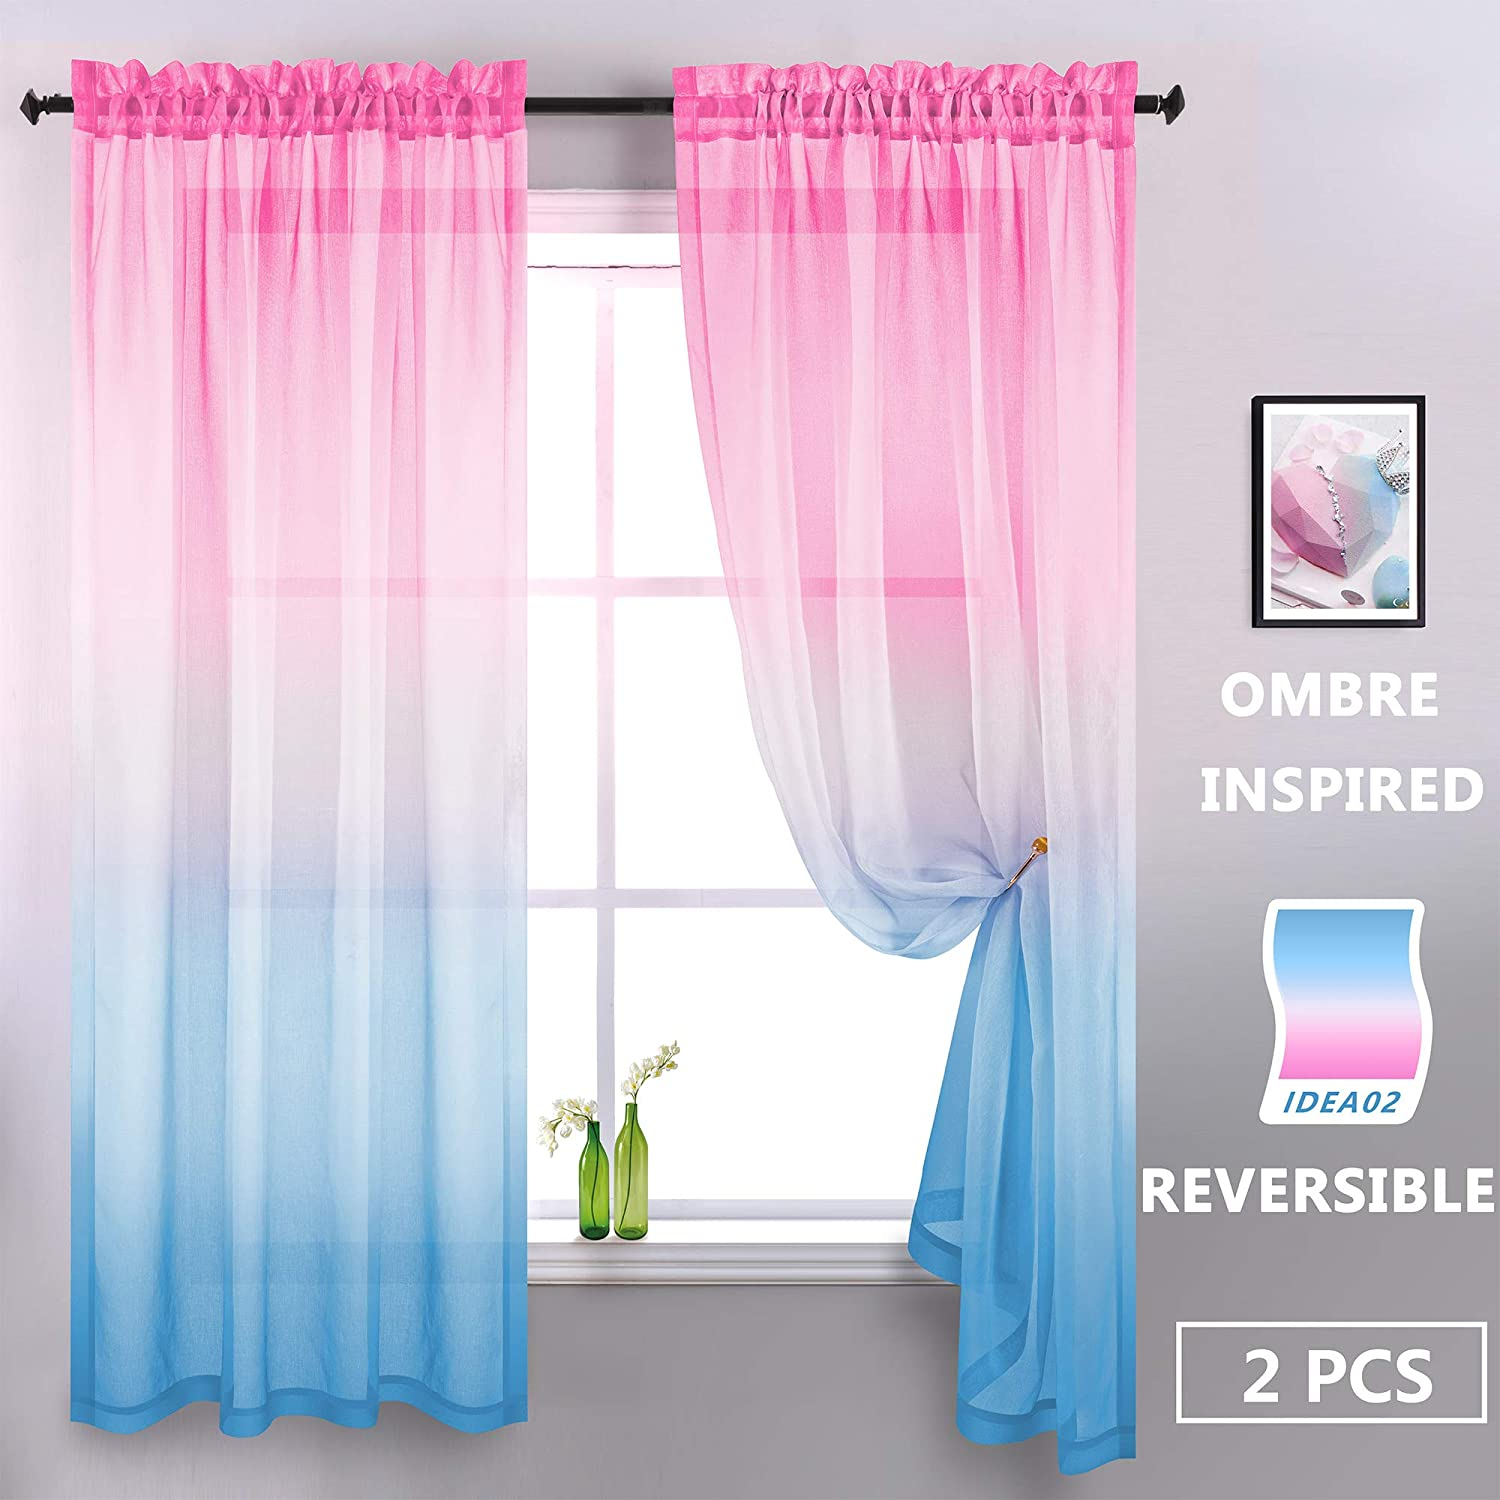 KOUFALL Pink and Blue Curtains for Girls Bedroom Set of 2 Panels Rod Pocket Window Pink and Blue Sheer Curtains for Girls Room Decor Kids Nursery Decoration 52 x 63 Inch Length